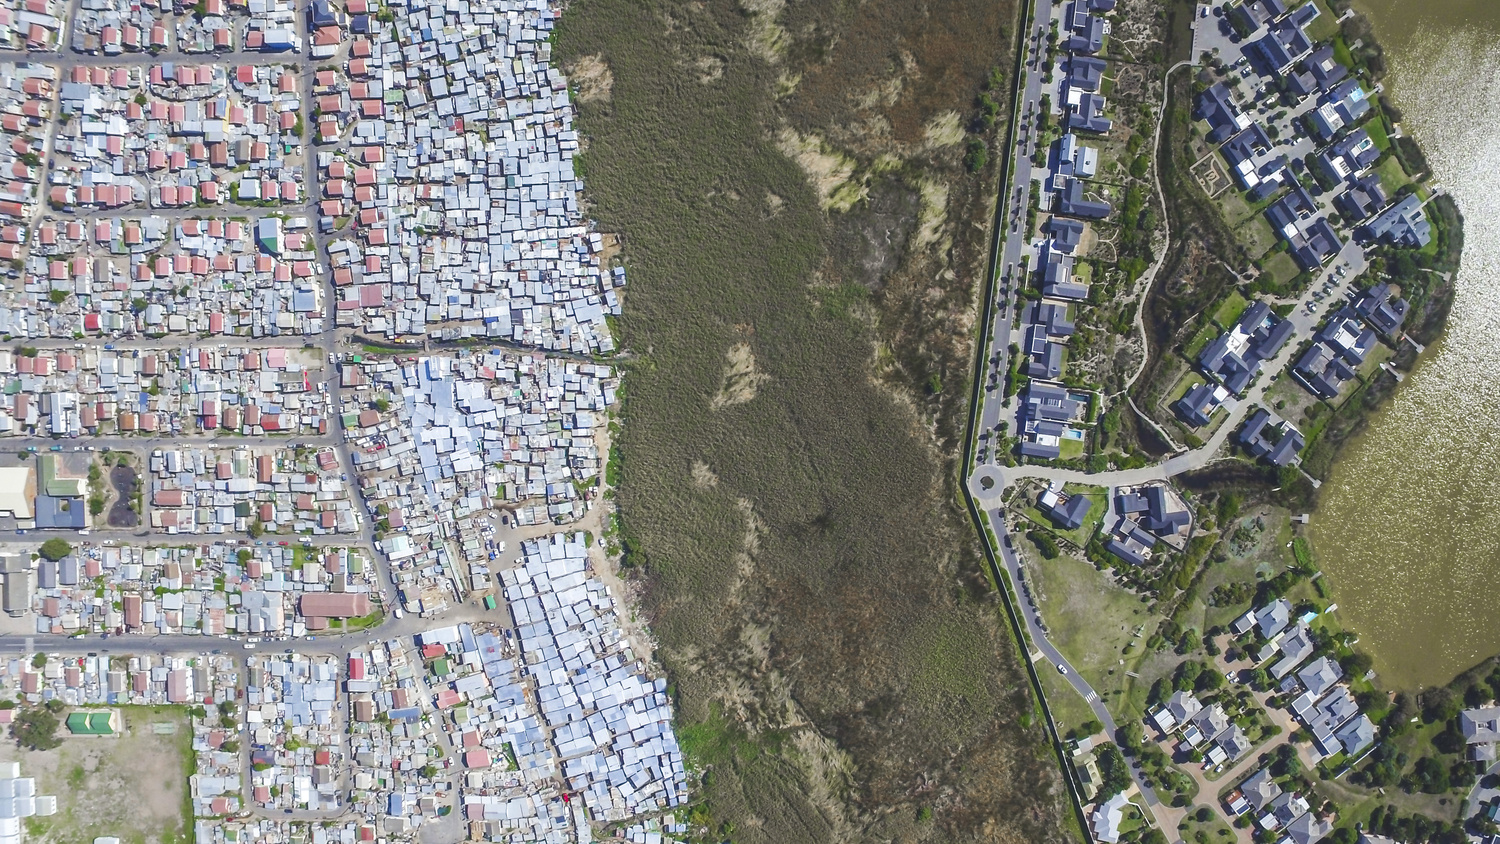 Masiphumelele on left, affluent suburbs on right